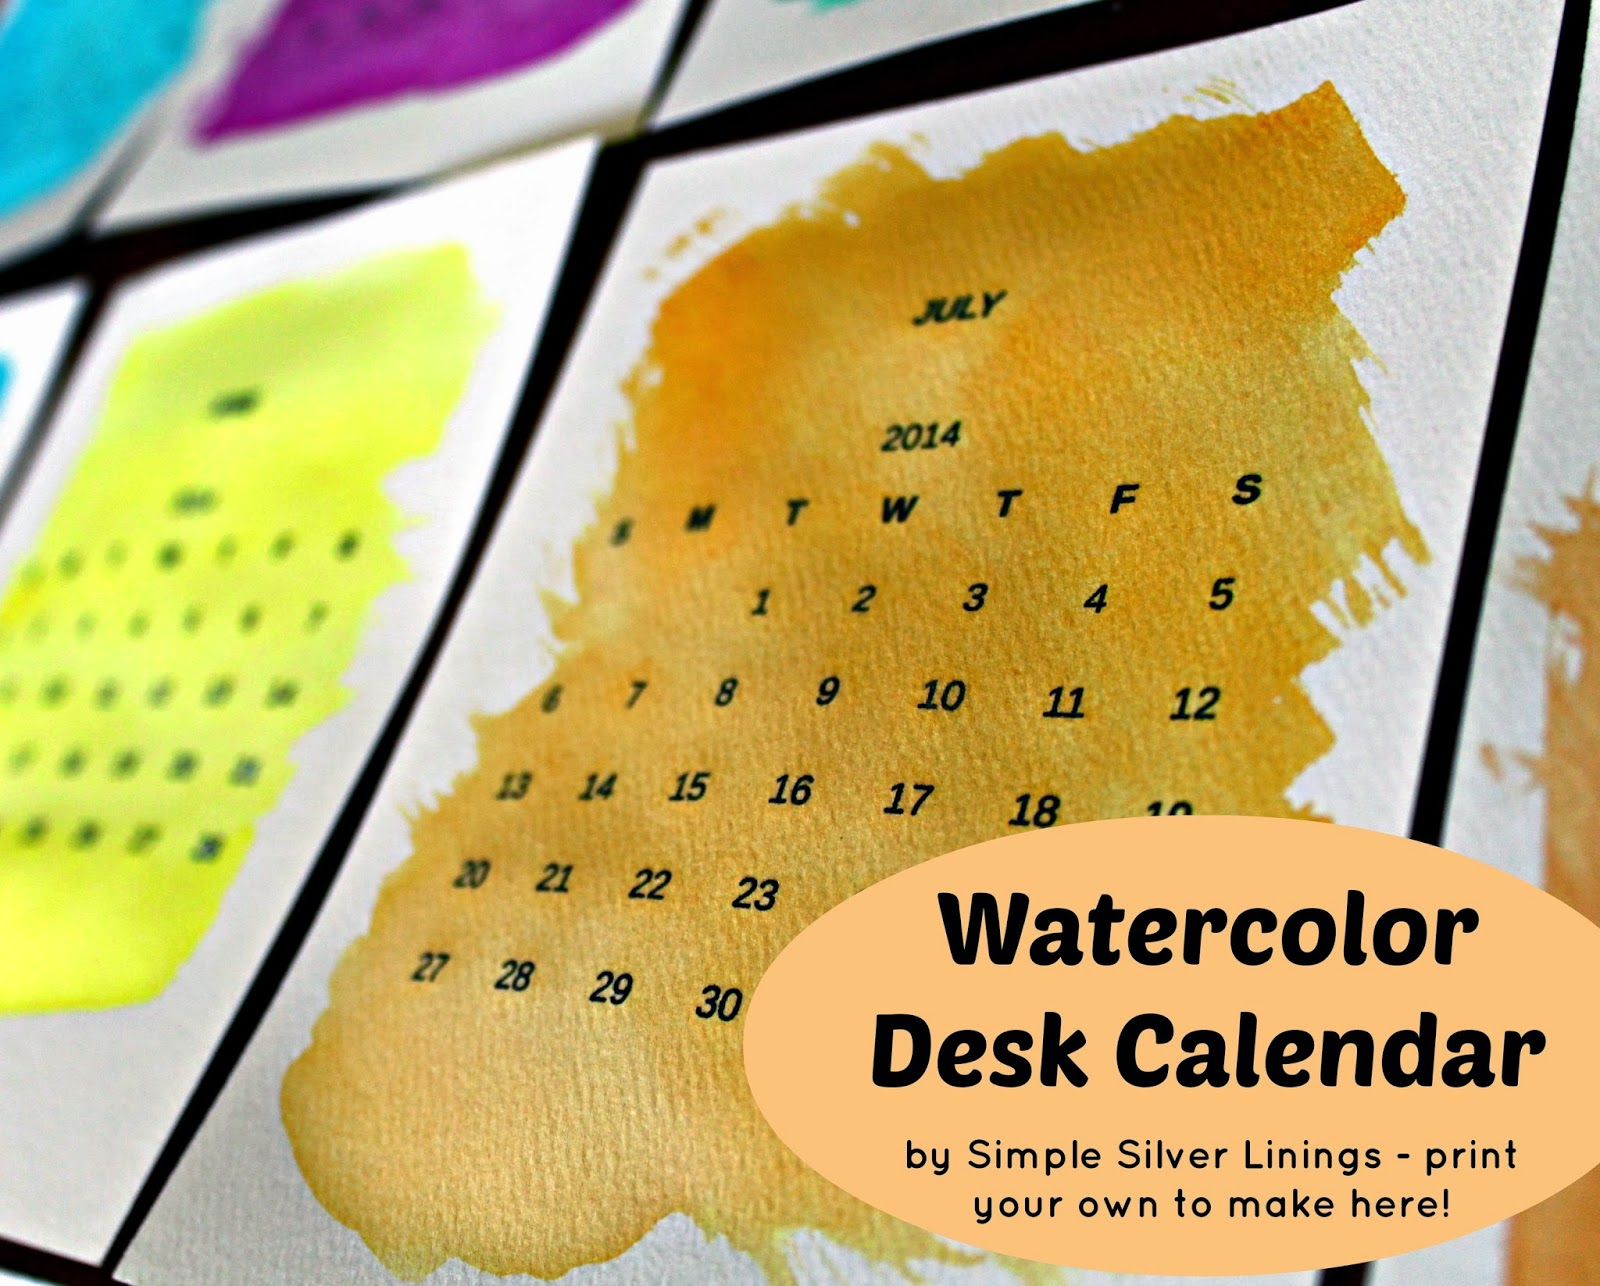 simple silver linings give this watercolor desk calendar a dry run